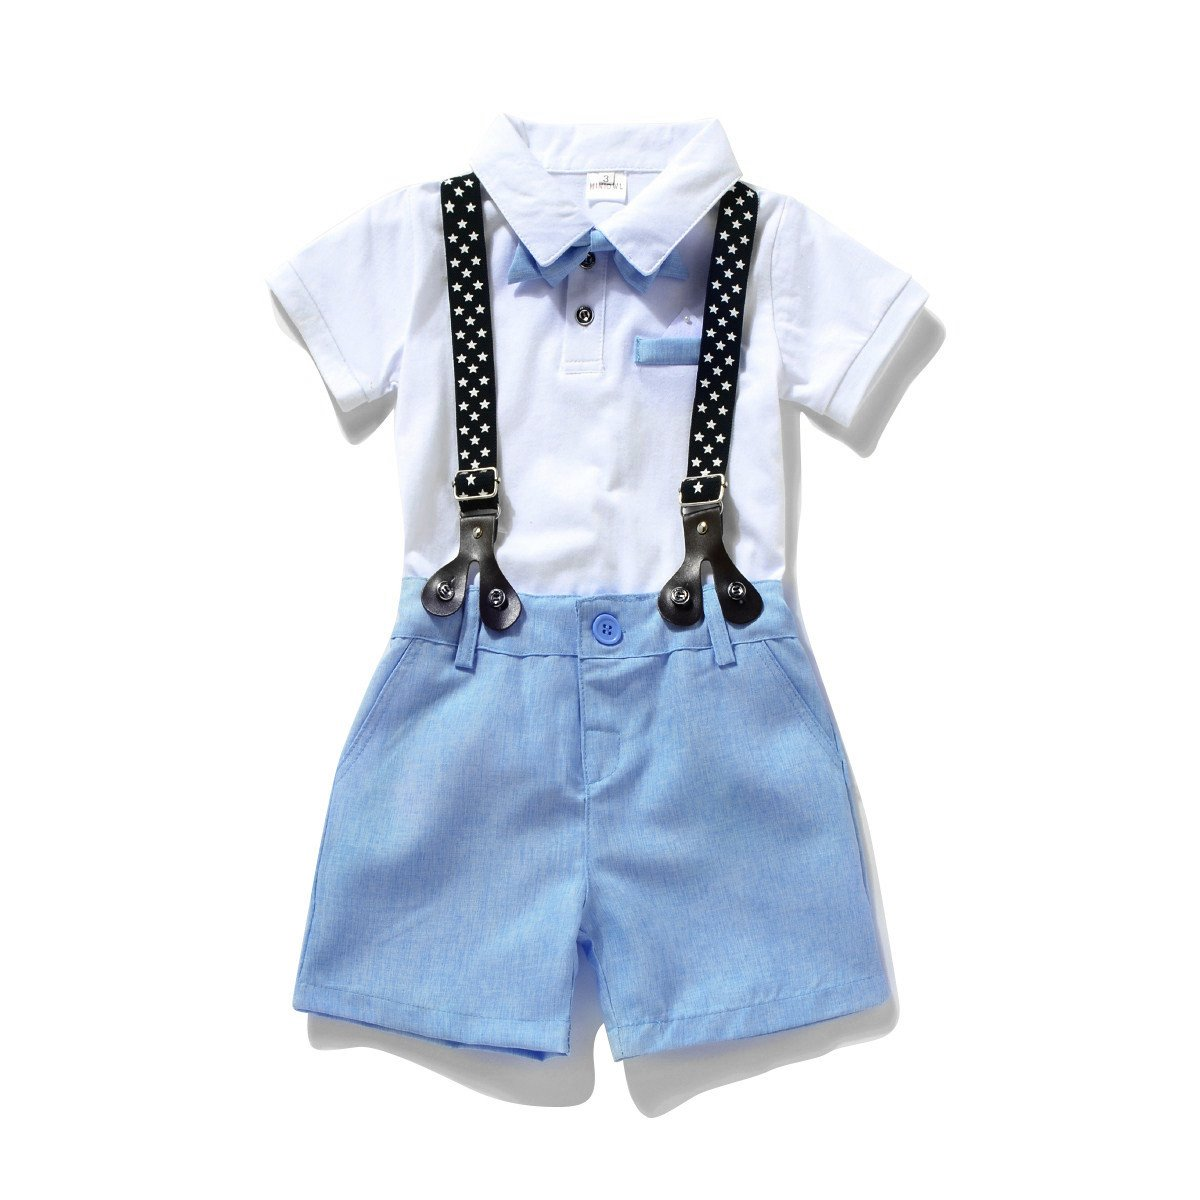 Toddler Boys Clothing Set Gentleman Outfit Bowtie Polo Shirt Bid Shorts Overalls 167184